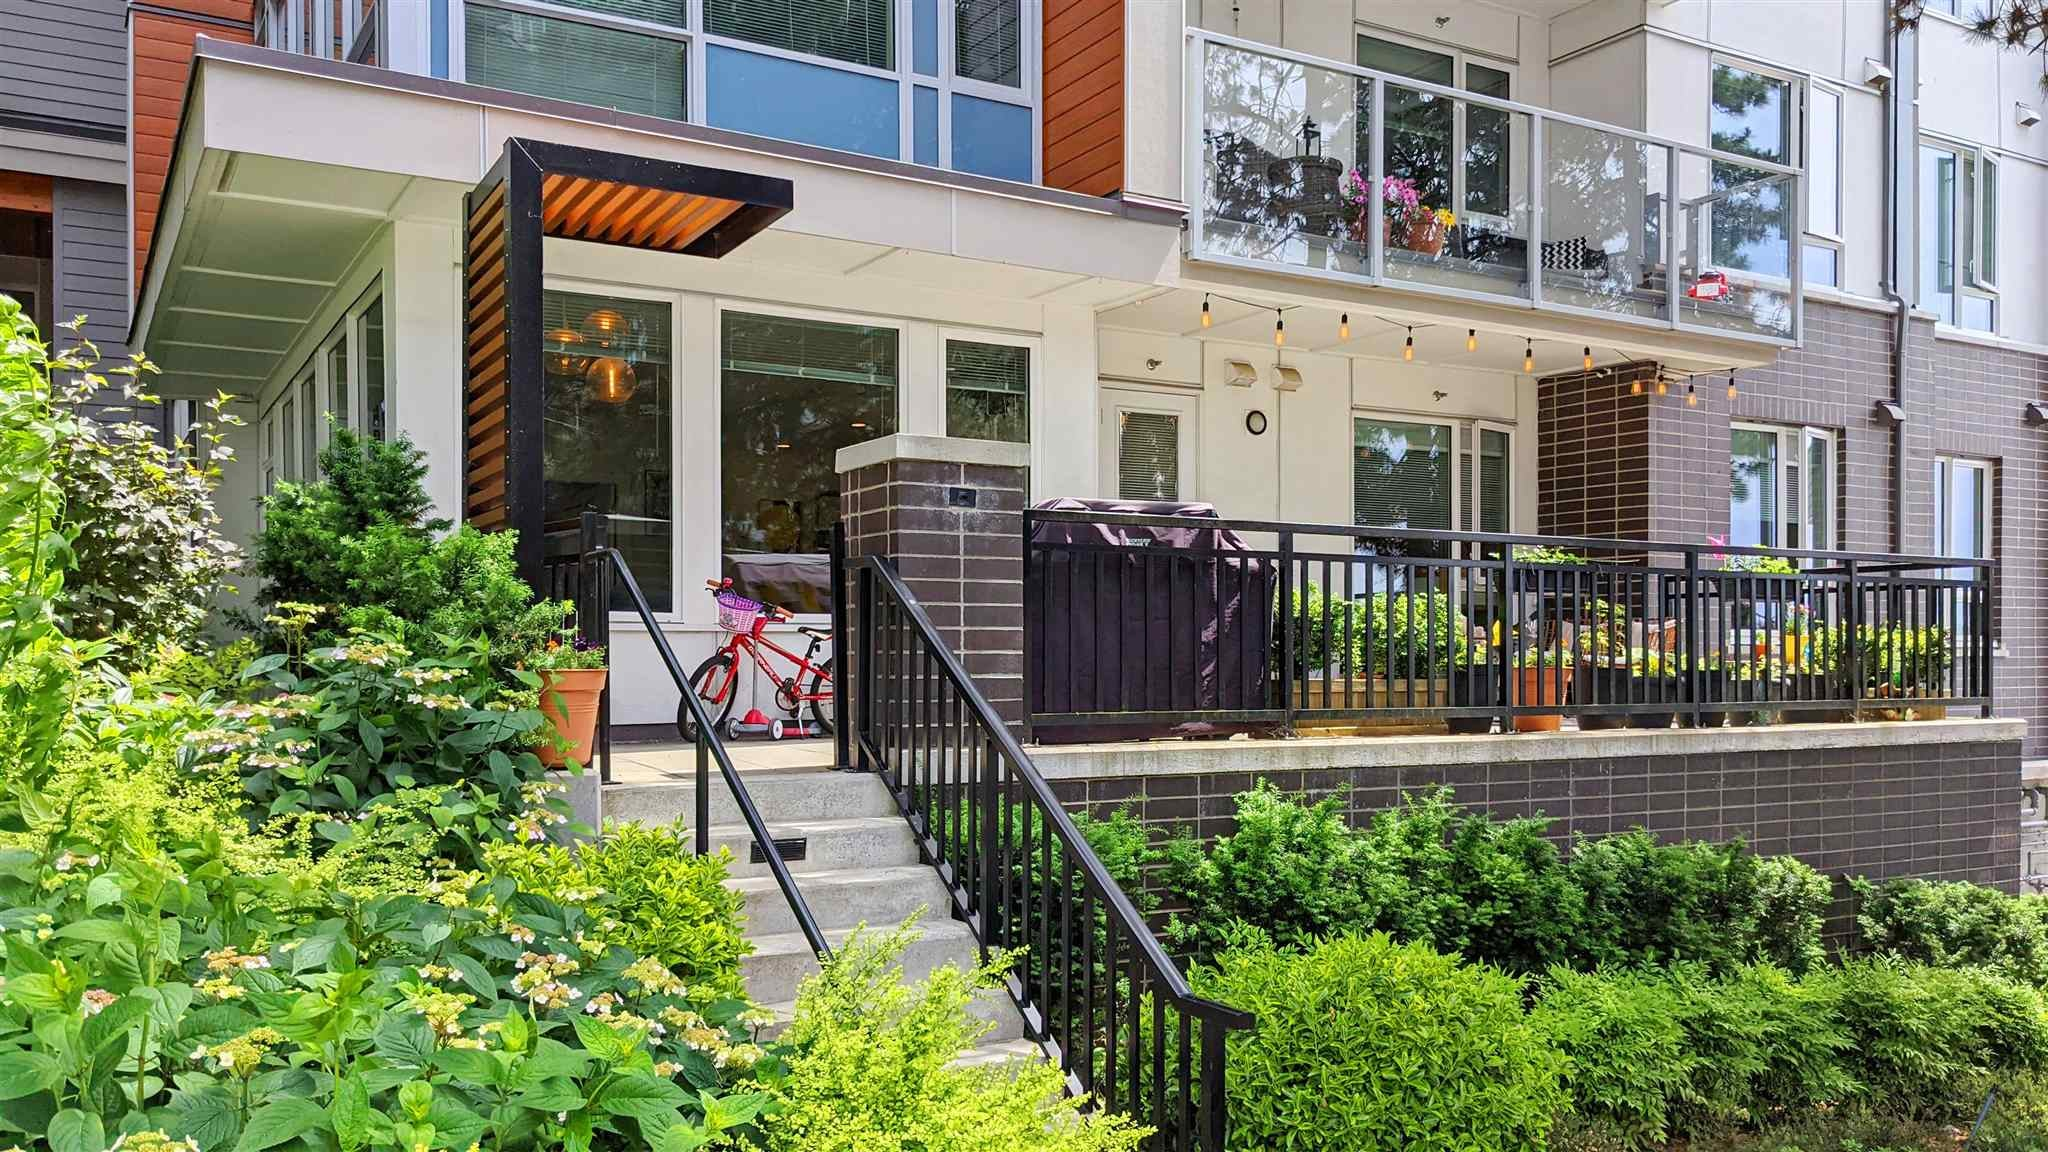 111 277 W 1ST STREET - Lower Lonsdale Apartment/Condo for sale, 3 Bedrooms (R2595131)